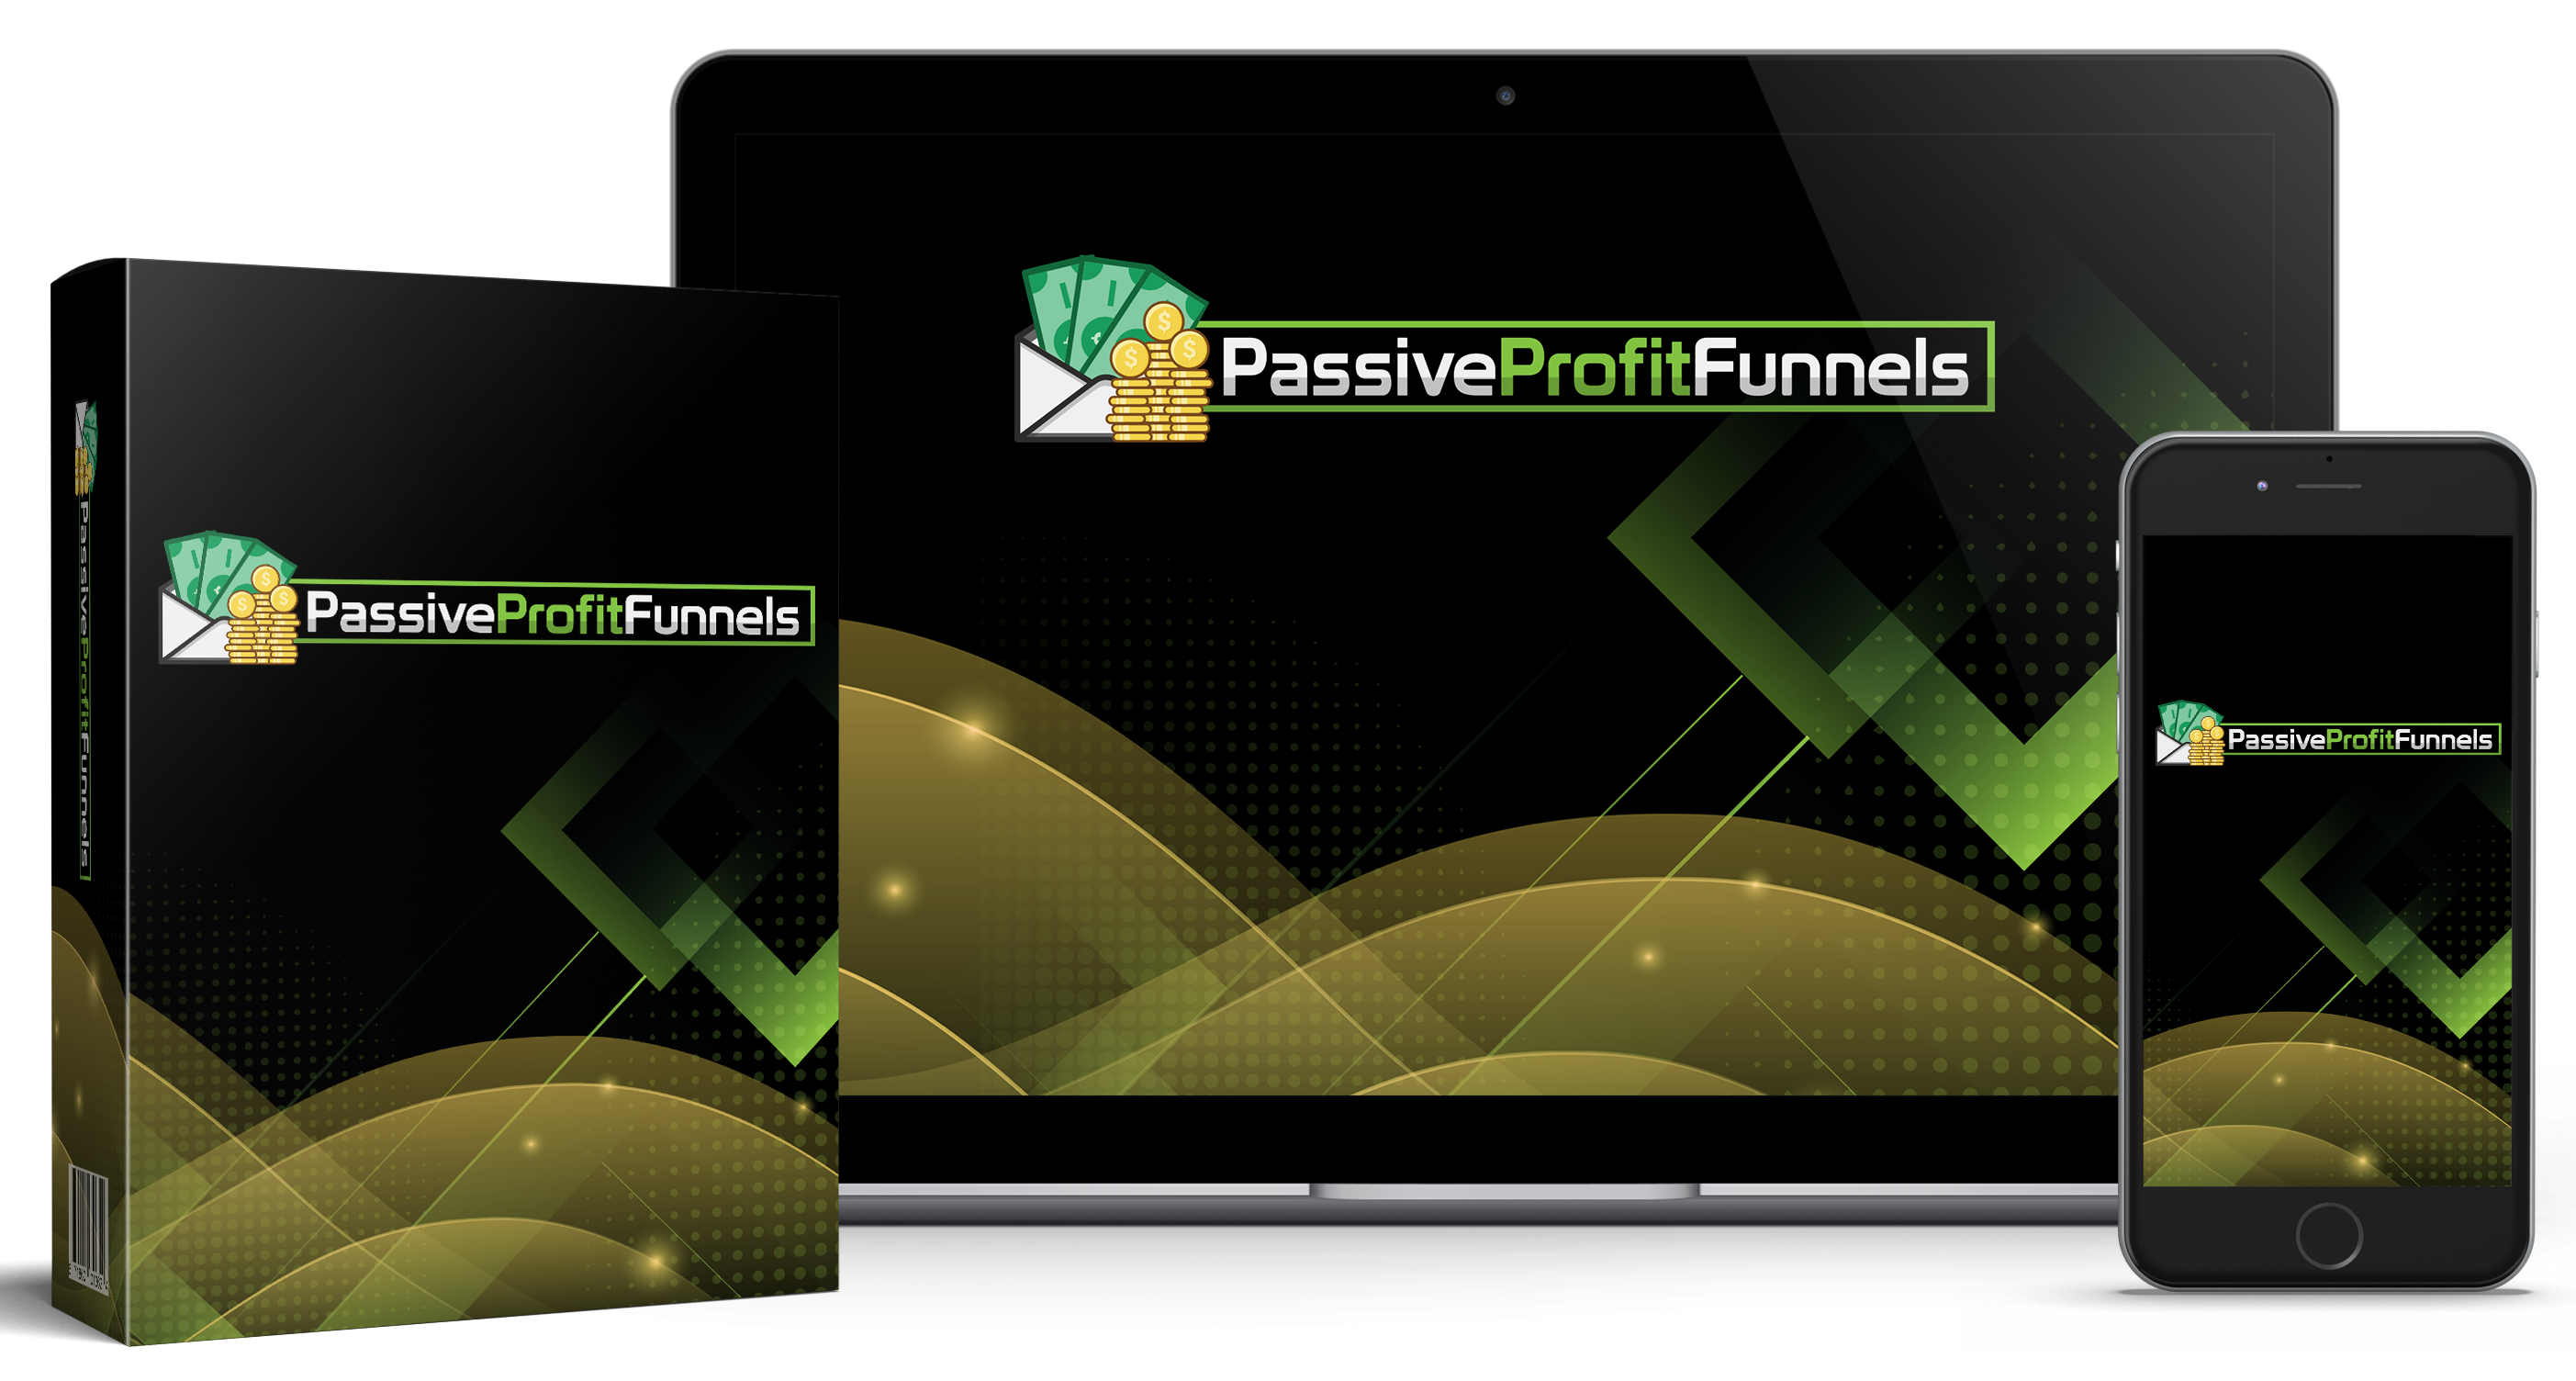 Passive Profit Funnels is an all-inclusive system for building subscriber lists and making affiliate commissions in a wide range of niches. It comes loaded with a cloud-based software, Multiple Done-For-You funnels, a database of stunning landing pages and premium lead magnets, plus step-by-step training that's simple to follow